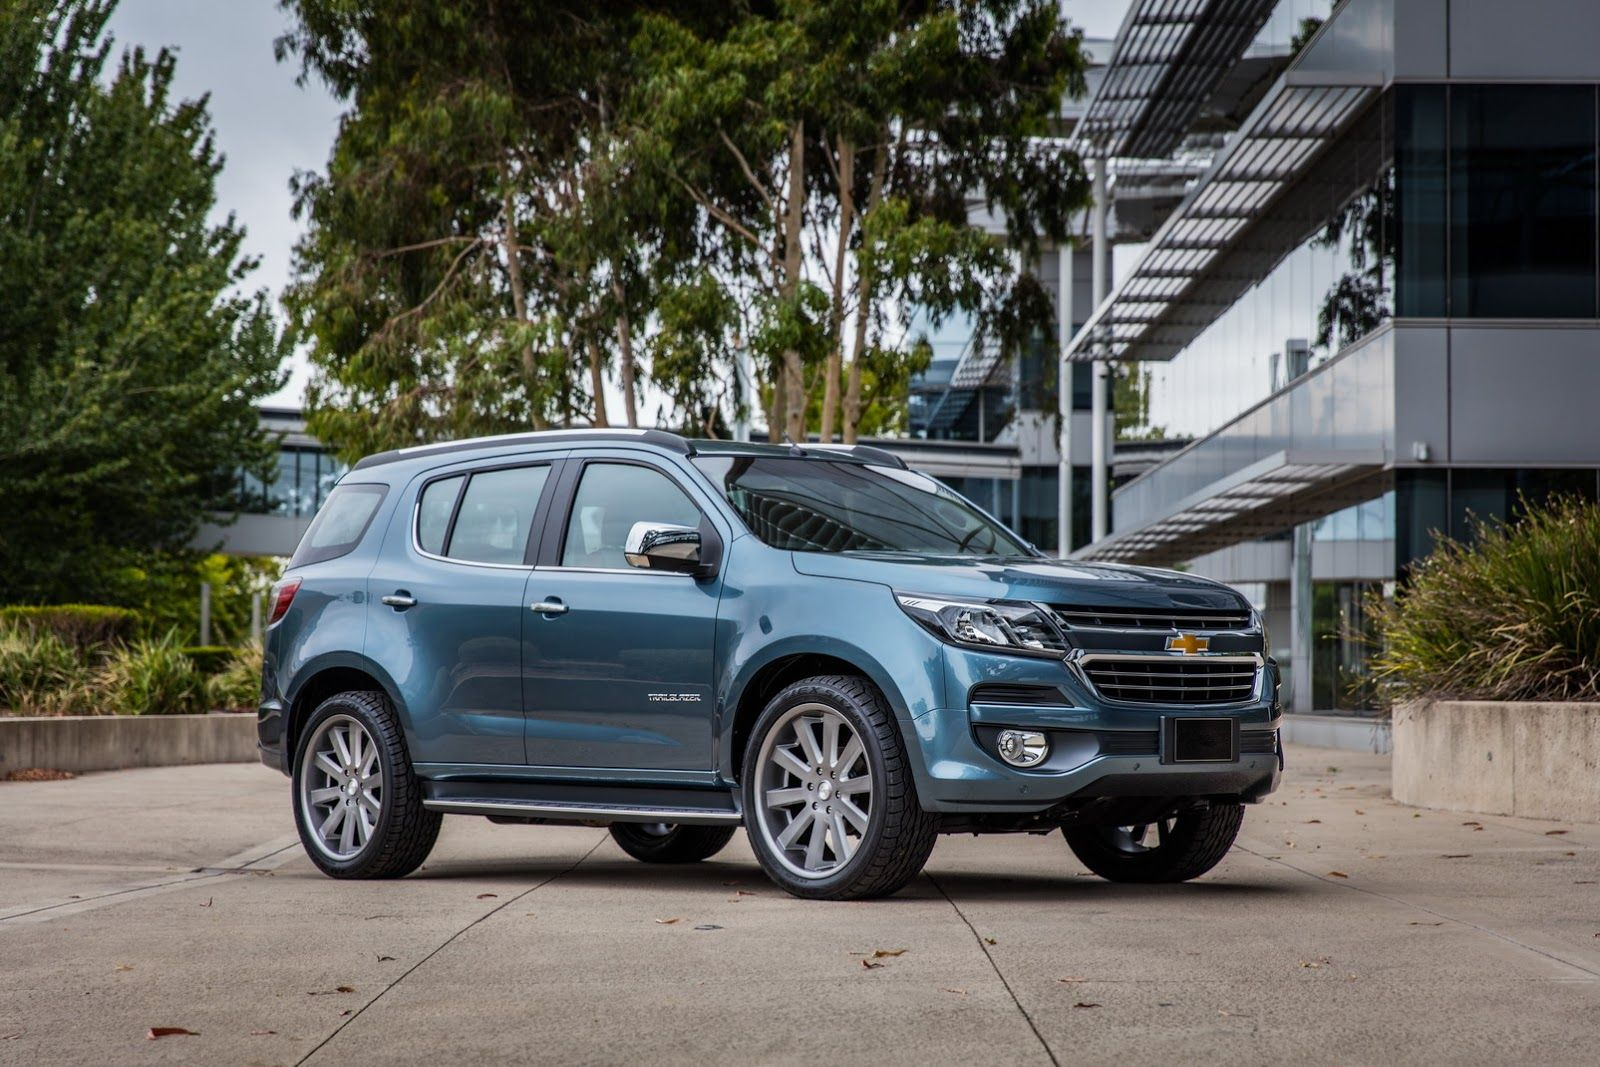 2017-Chevrolet-Trailblazer-India-Images-Front-Angle-2 ...